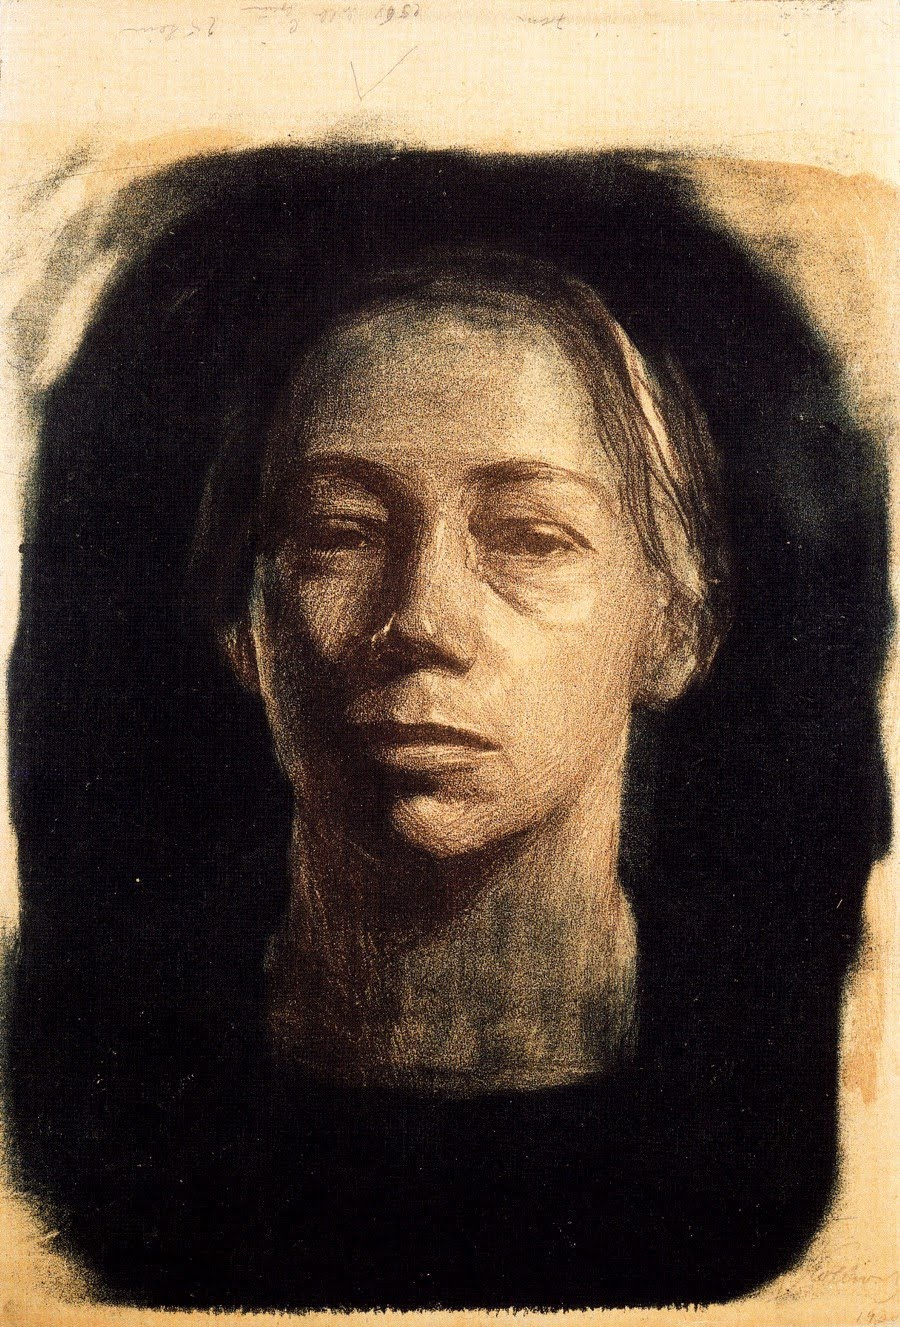 kathe kollwitz Käthe kollwitz - a detailed biography of käthe kollwitz that includes images, quotations and the main facts of her life.